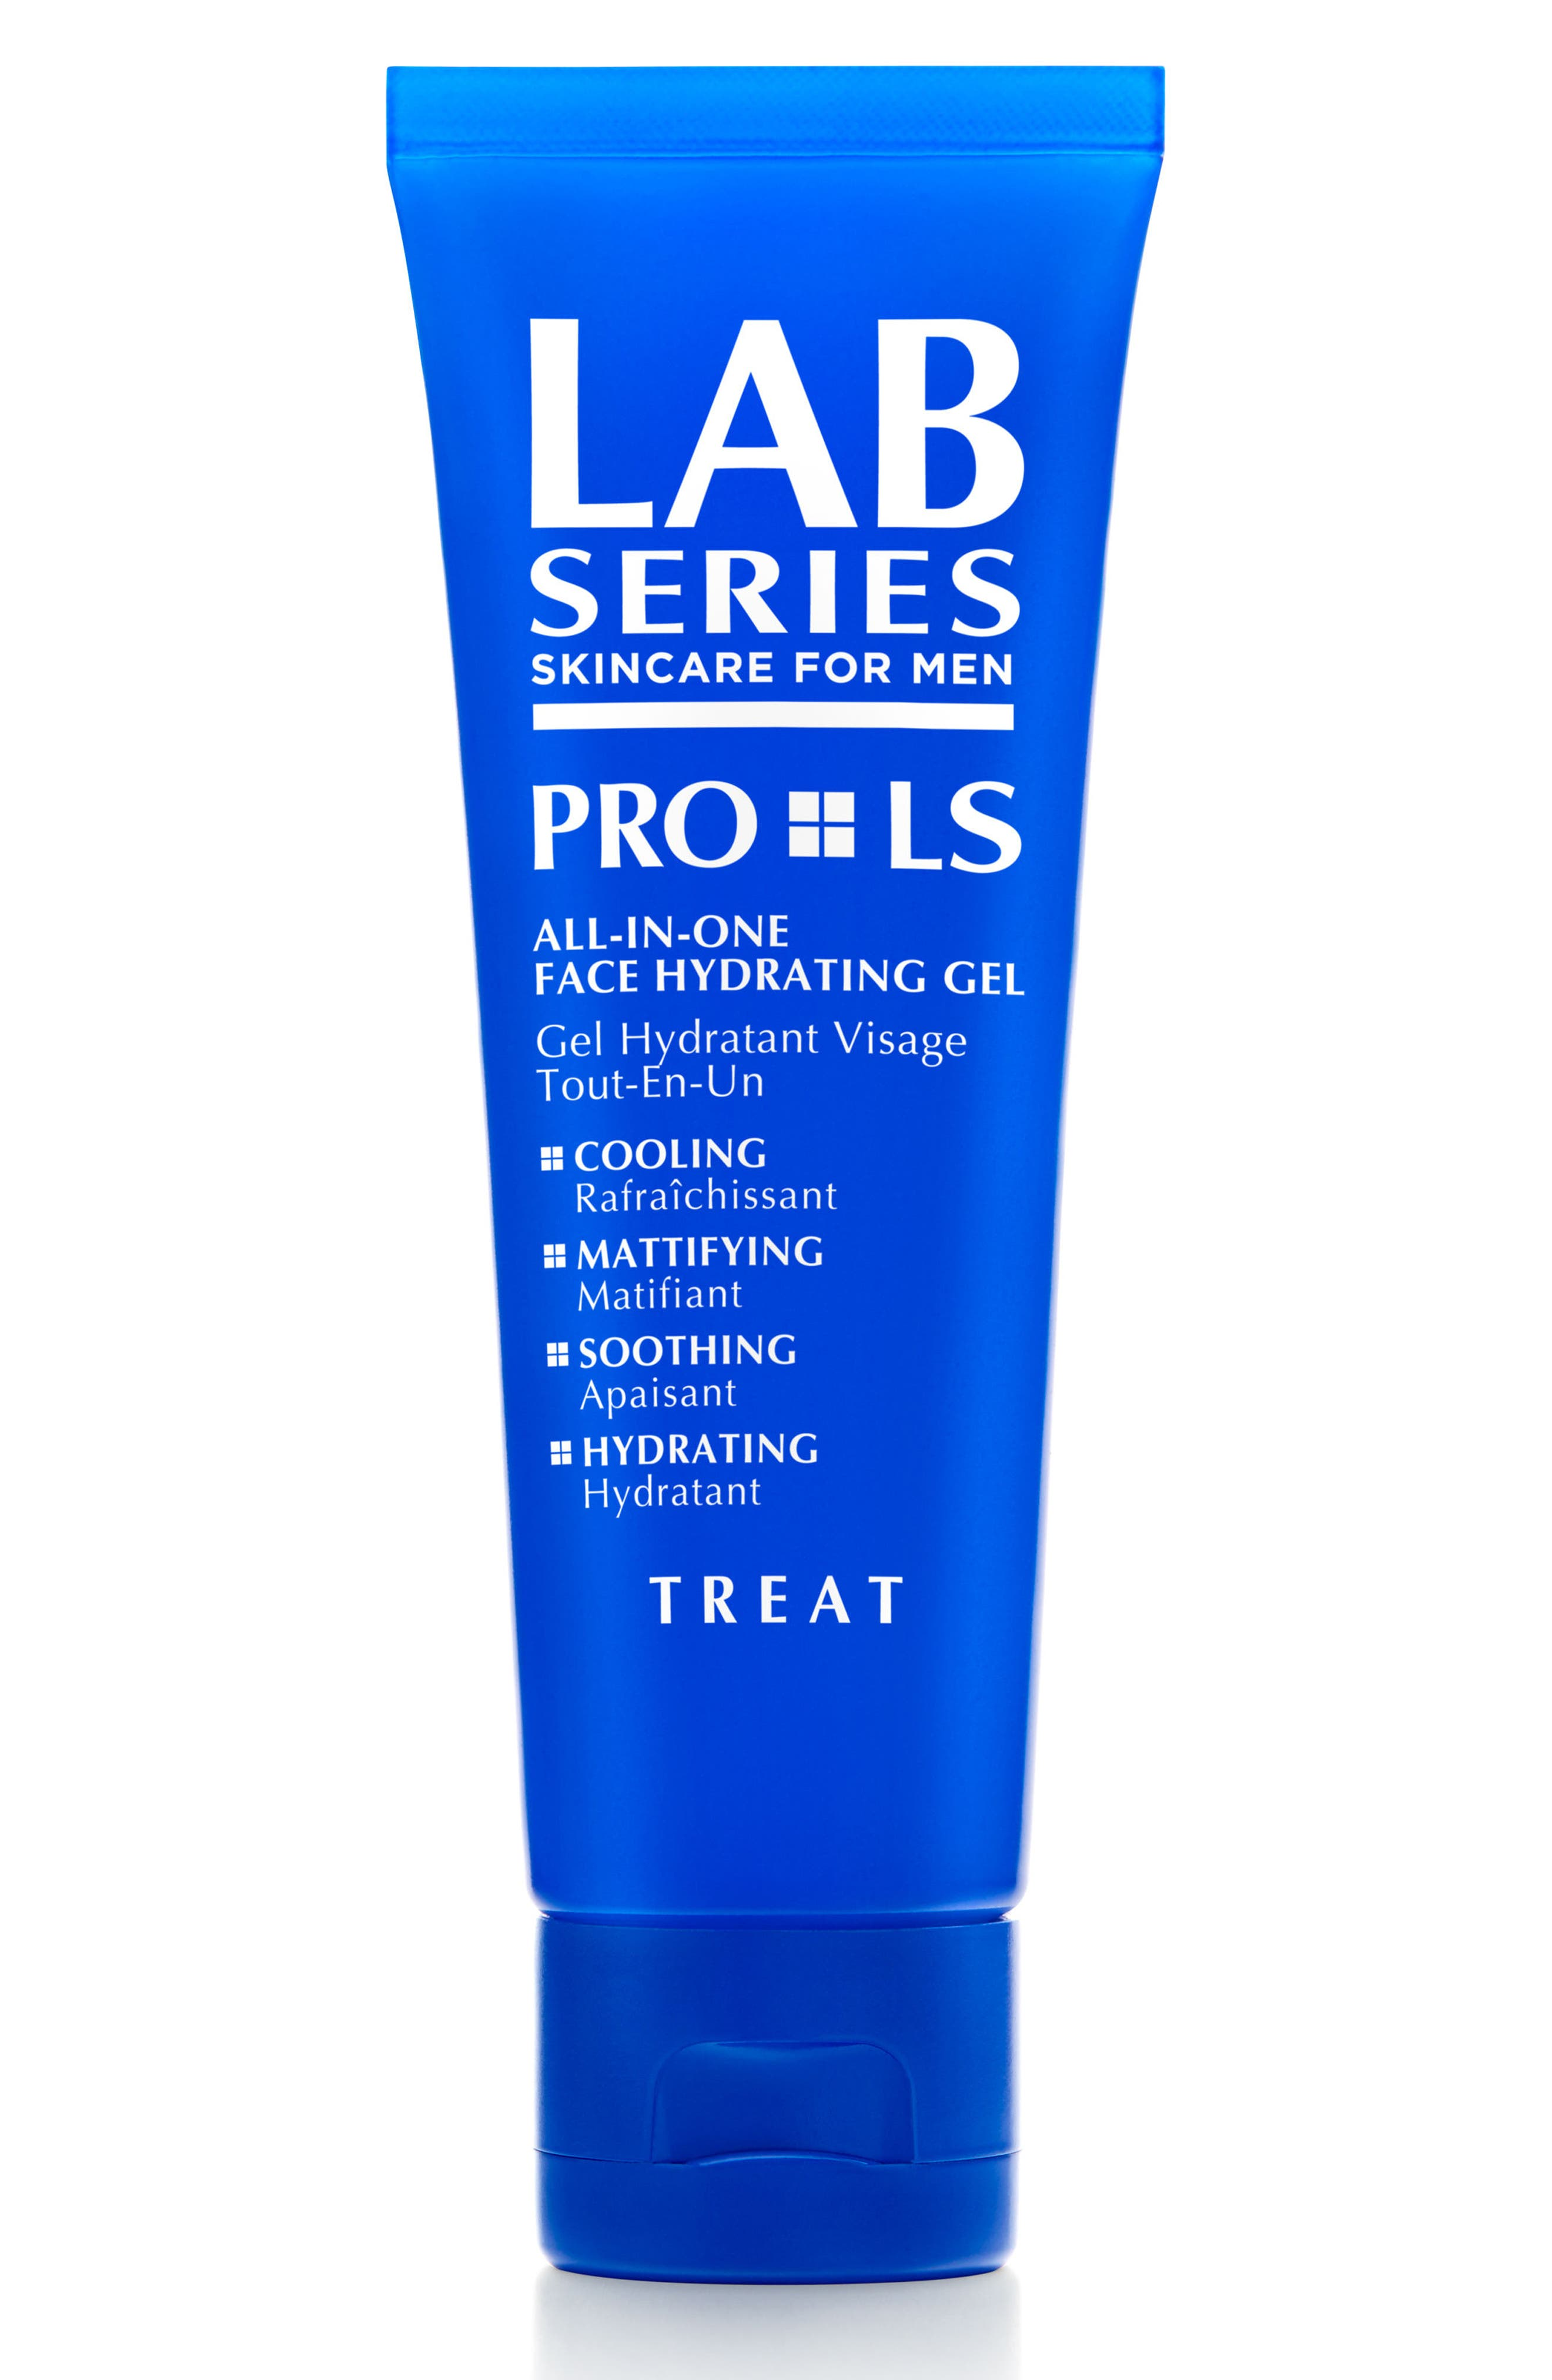 Alternate Image 1 Selected - Lab Series Skincare for Men PRO LS All-in-One Face Hydrating Gel